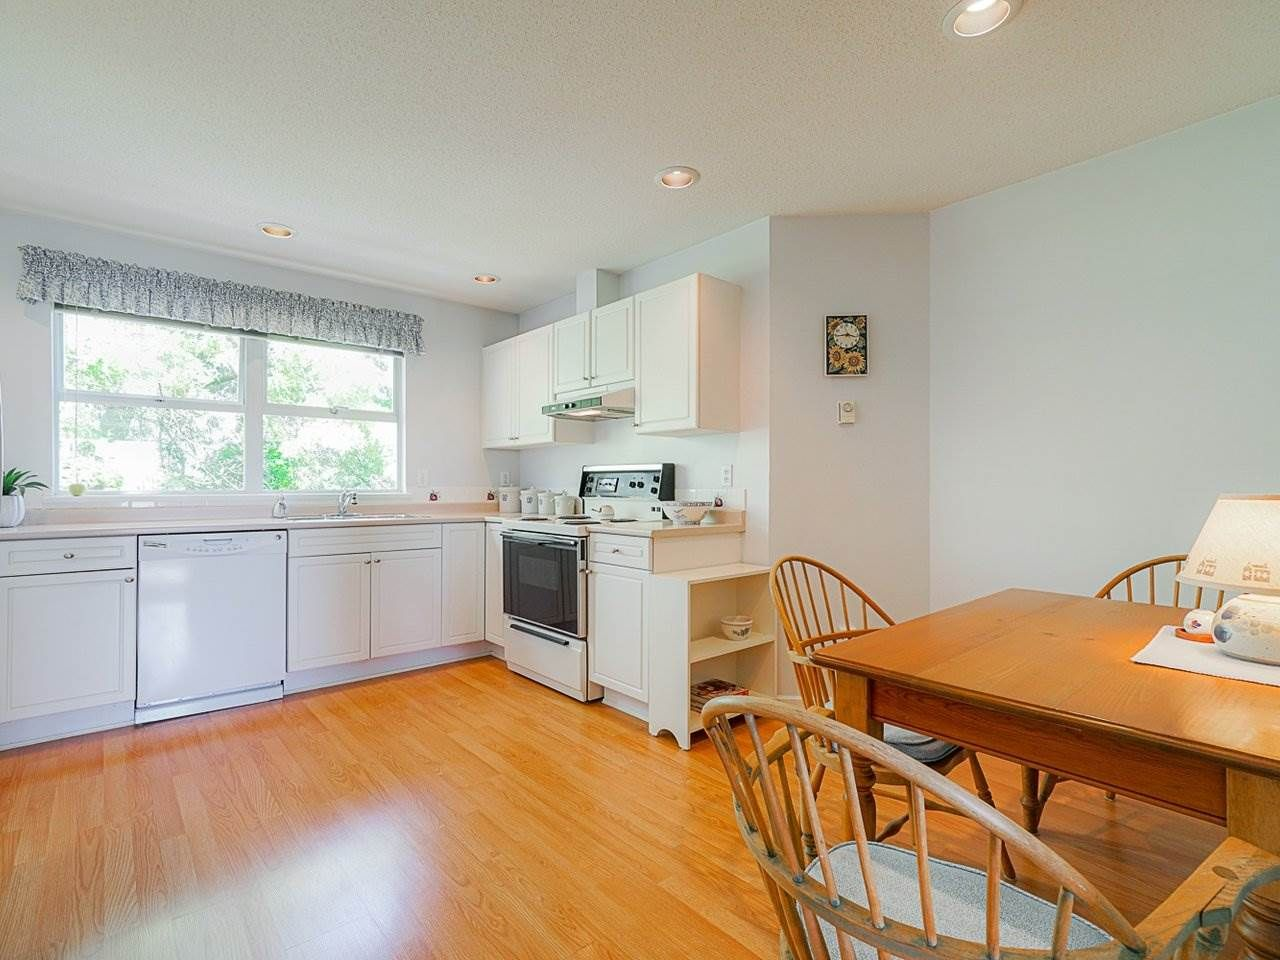 """Photo 27: Photos: 4 235 E KEITH Road in North Vancouver: Lower Lonsdale Townhouse for sale in """"Carriage Hill"""" : MLS®# R2471169"""